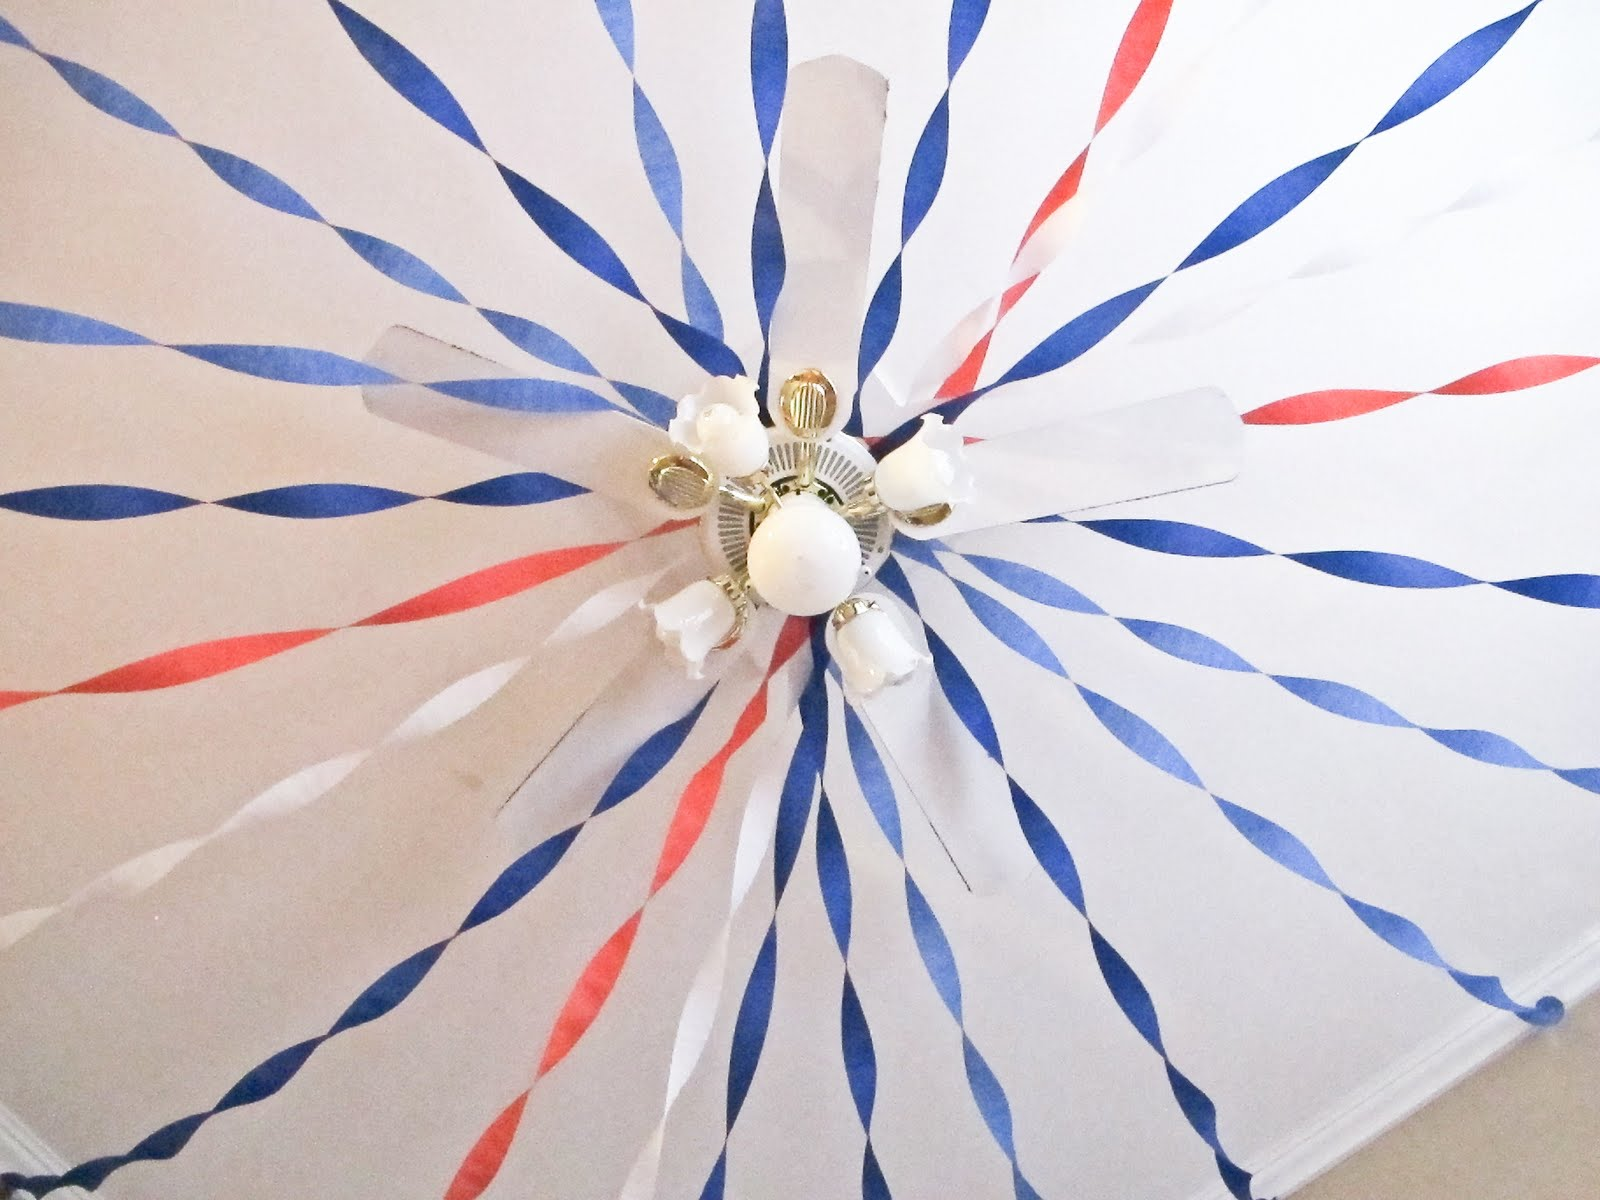 ceiling fan decorations photo - 4